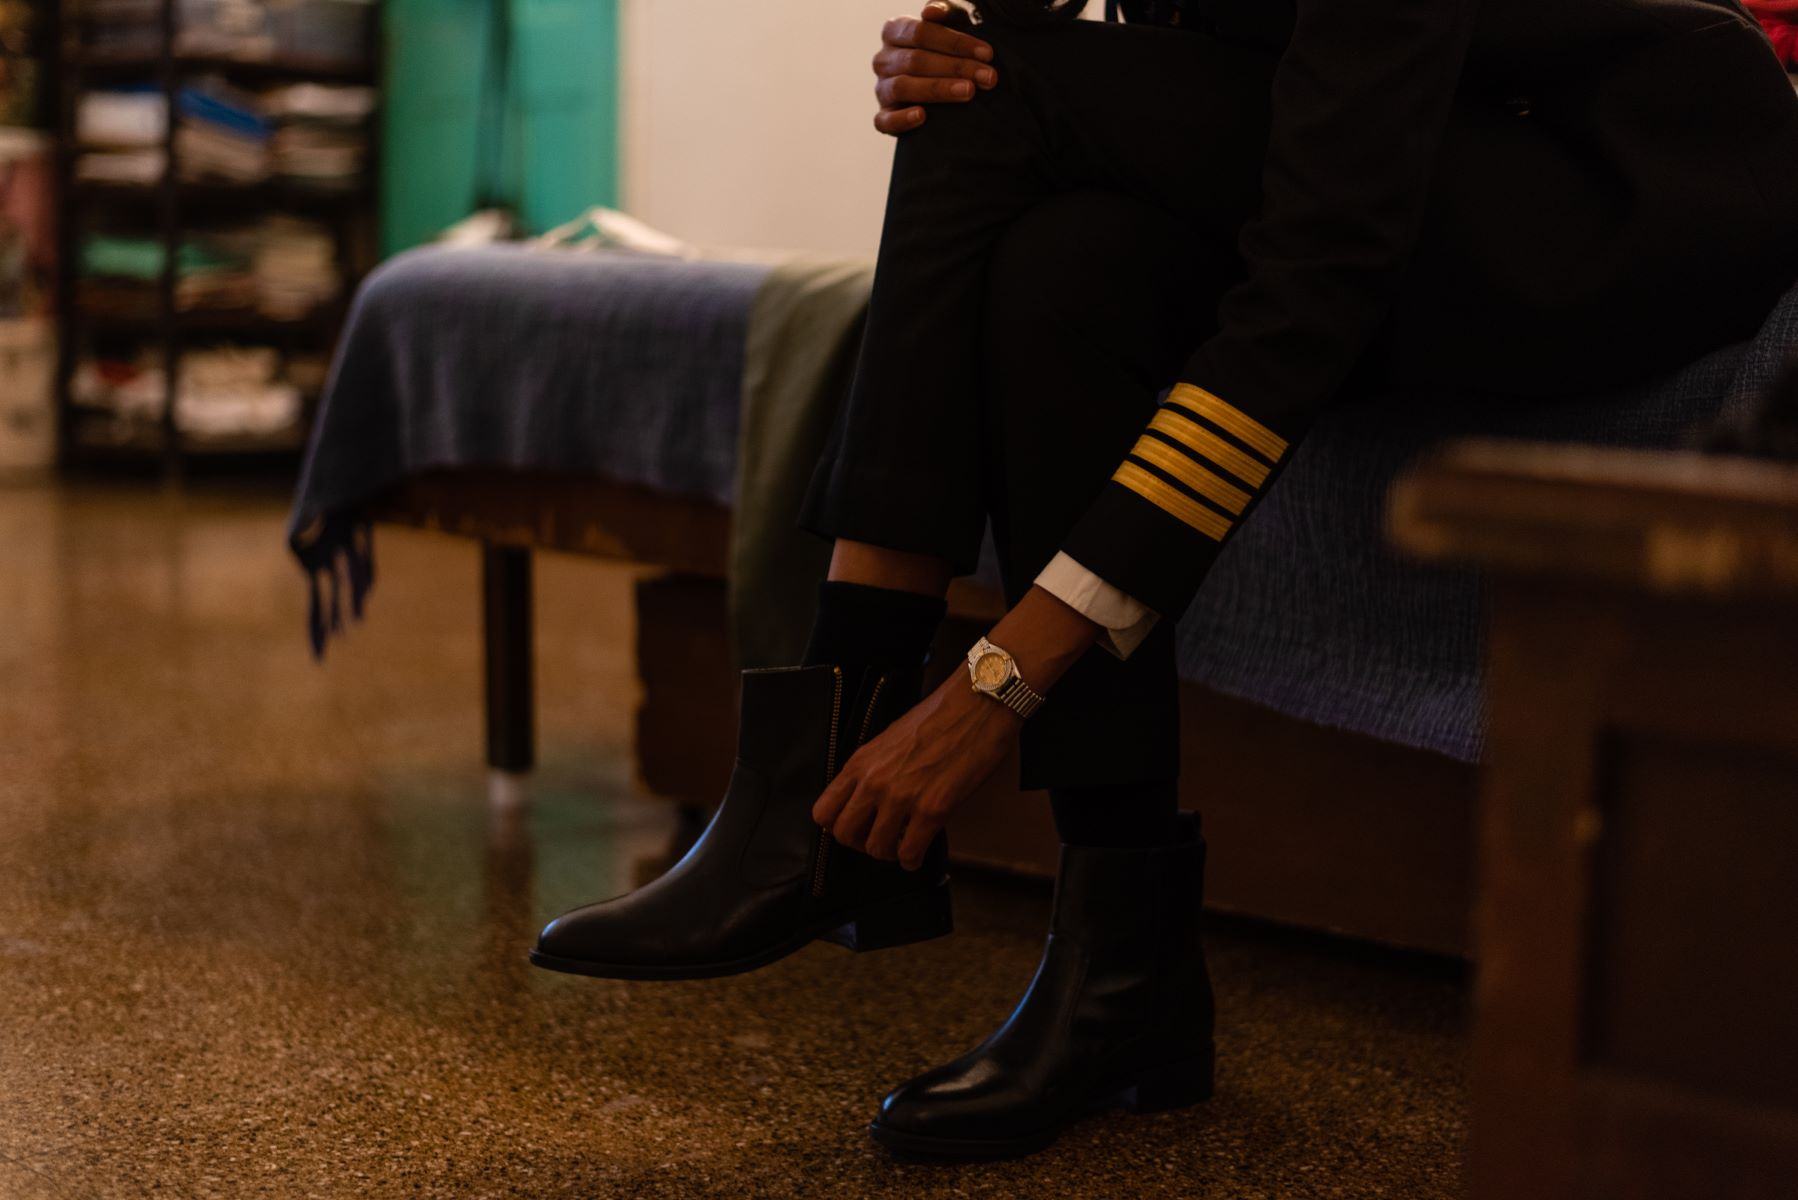 Getting dressed in uniform, Captain Thind wears her shoes in her room.